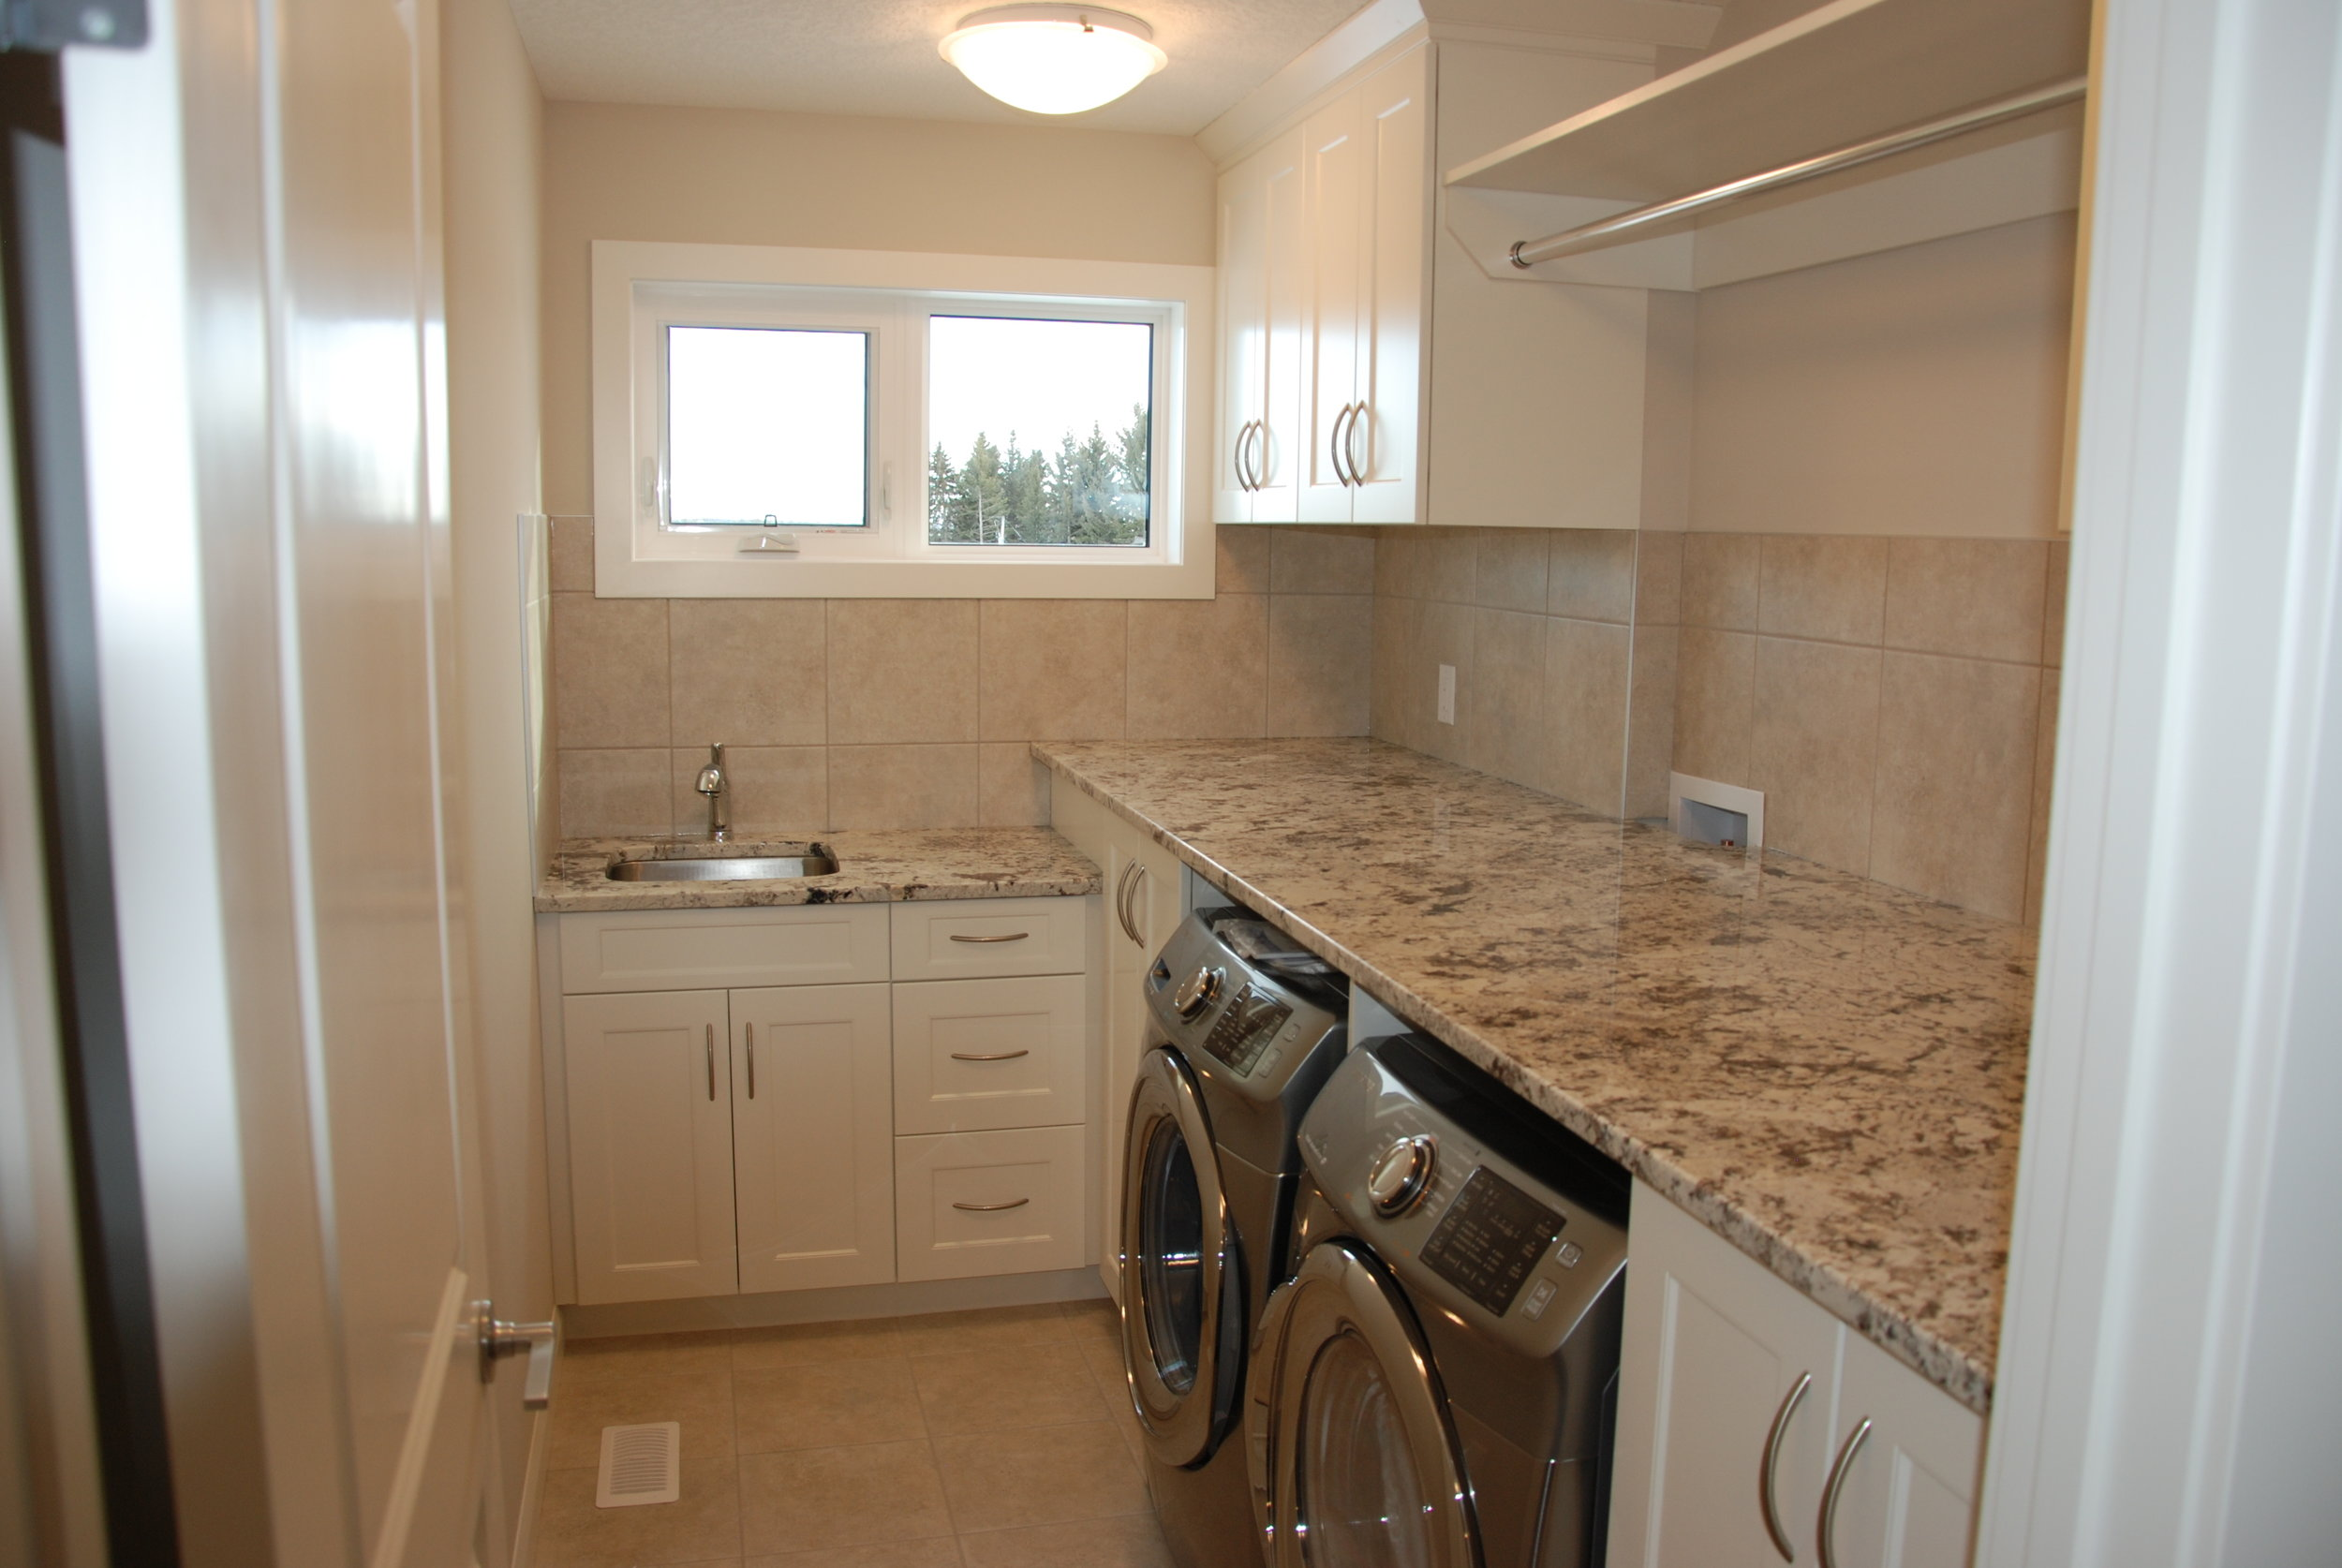 Convenient upstairs laundry is well appointed. A sink, storage space and hanging area are all surrounded by Italian ceramic tile.